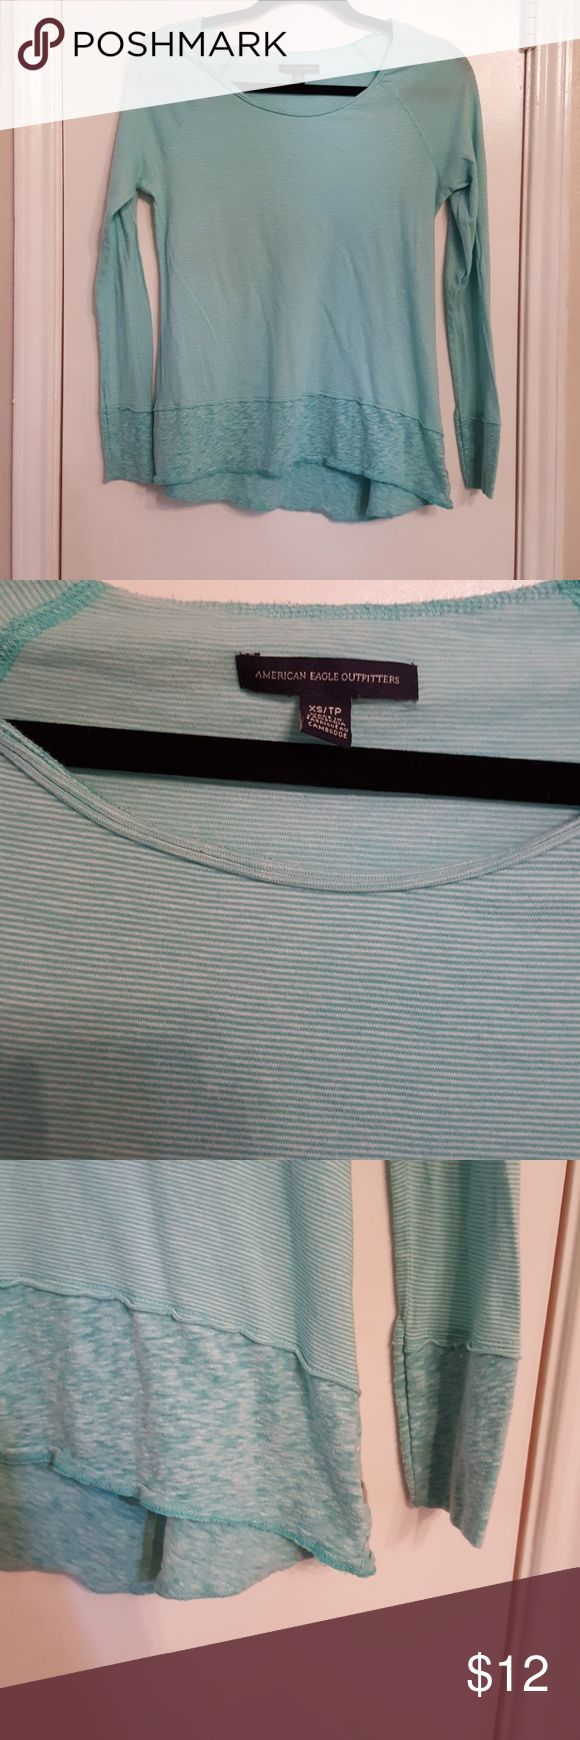 American eagle shirt size xs In good condition American Eagle Outfitters Tops Tees - Long Sleeve